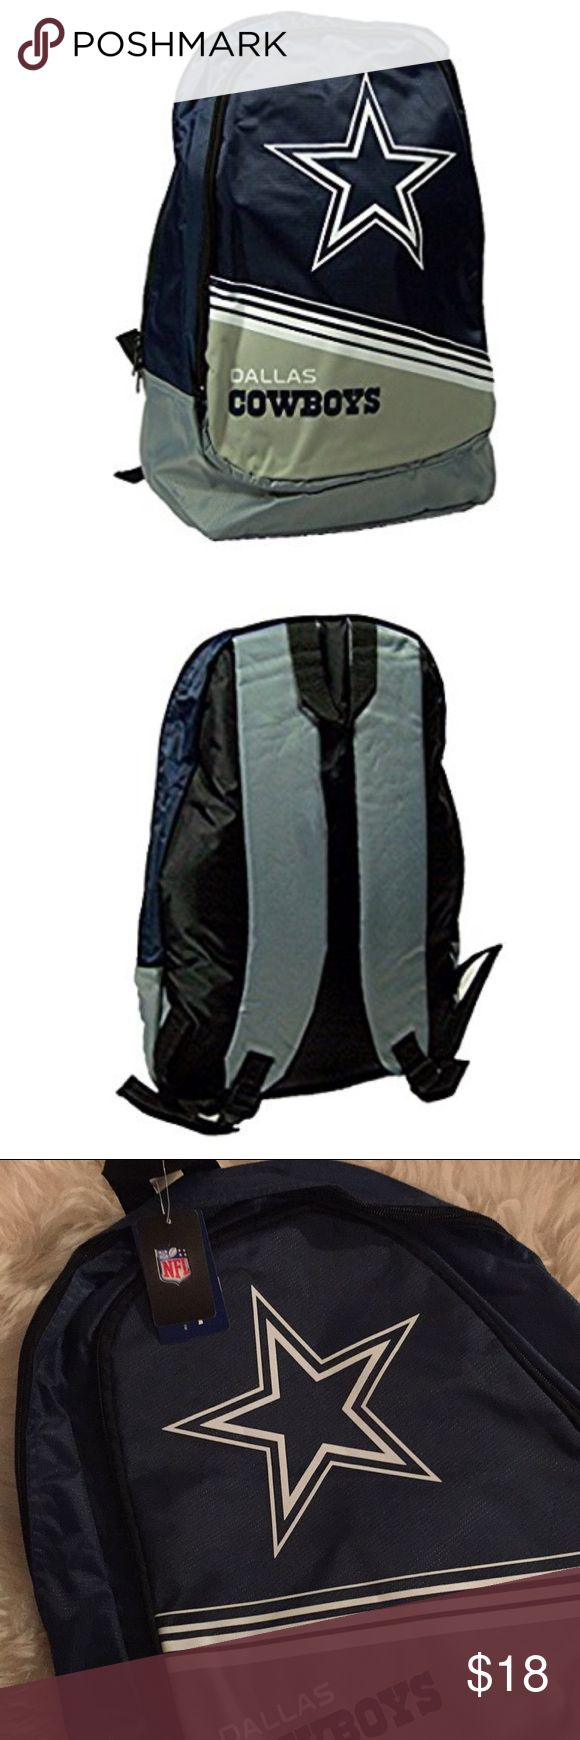 Dallas Cowboys backpack Official NFL merchandise full sized Cowboys back pack. NWT Accessories